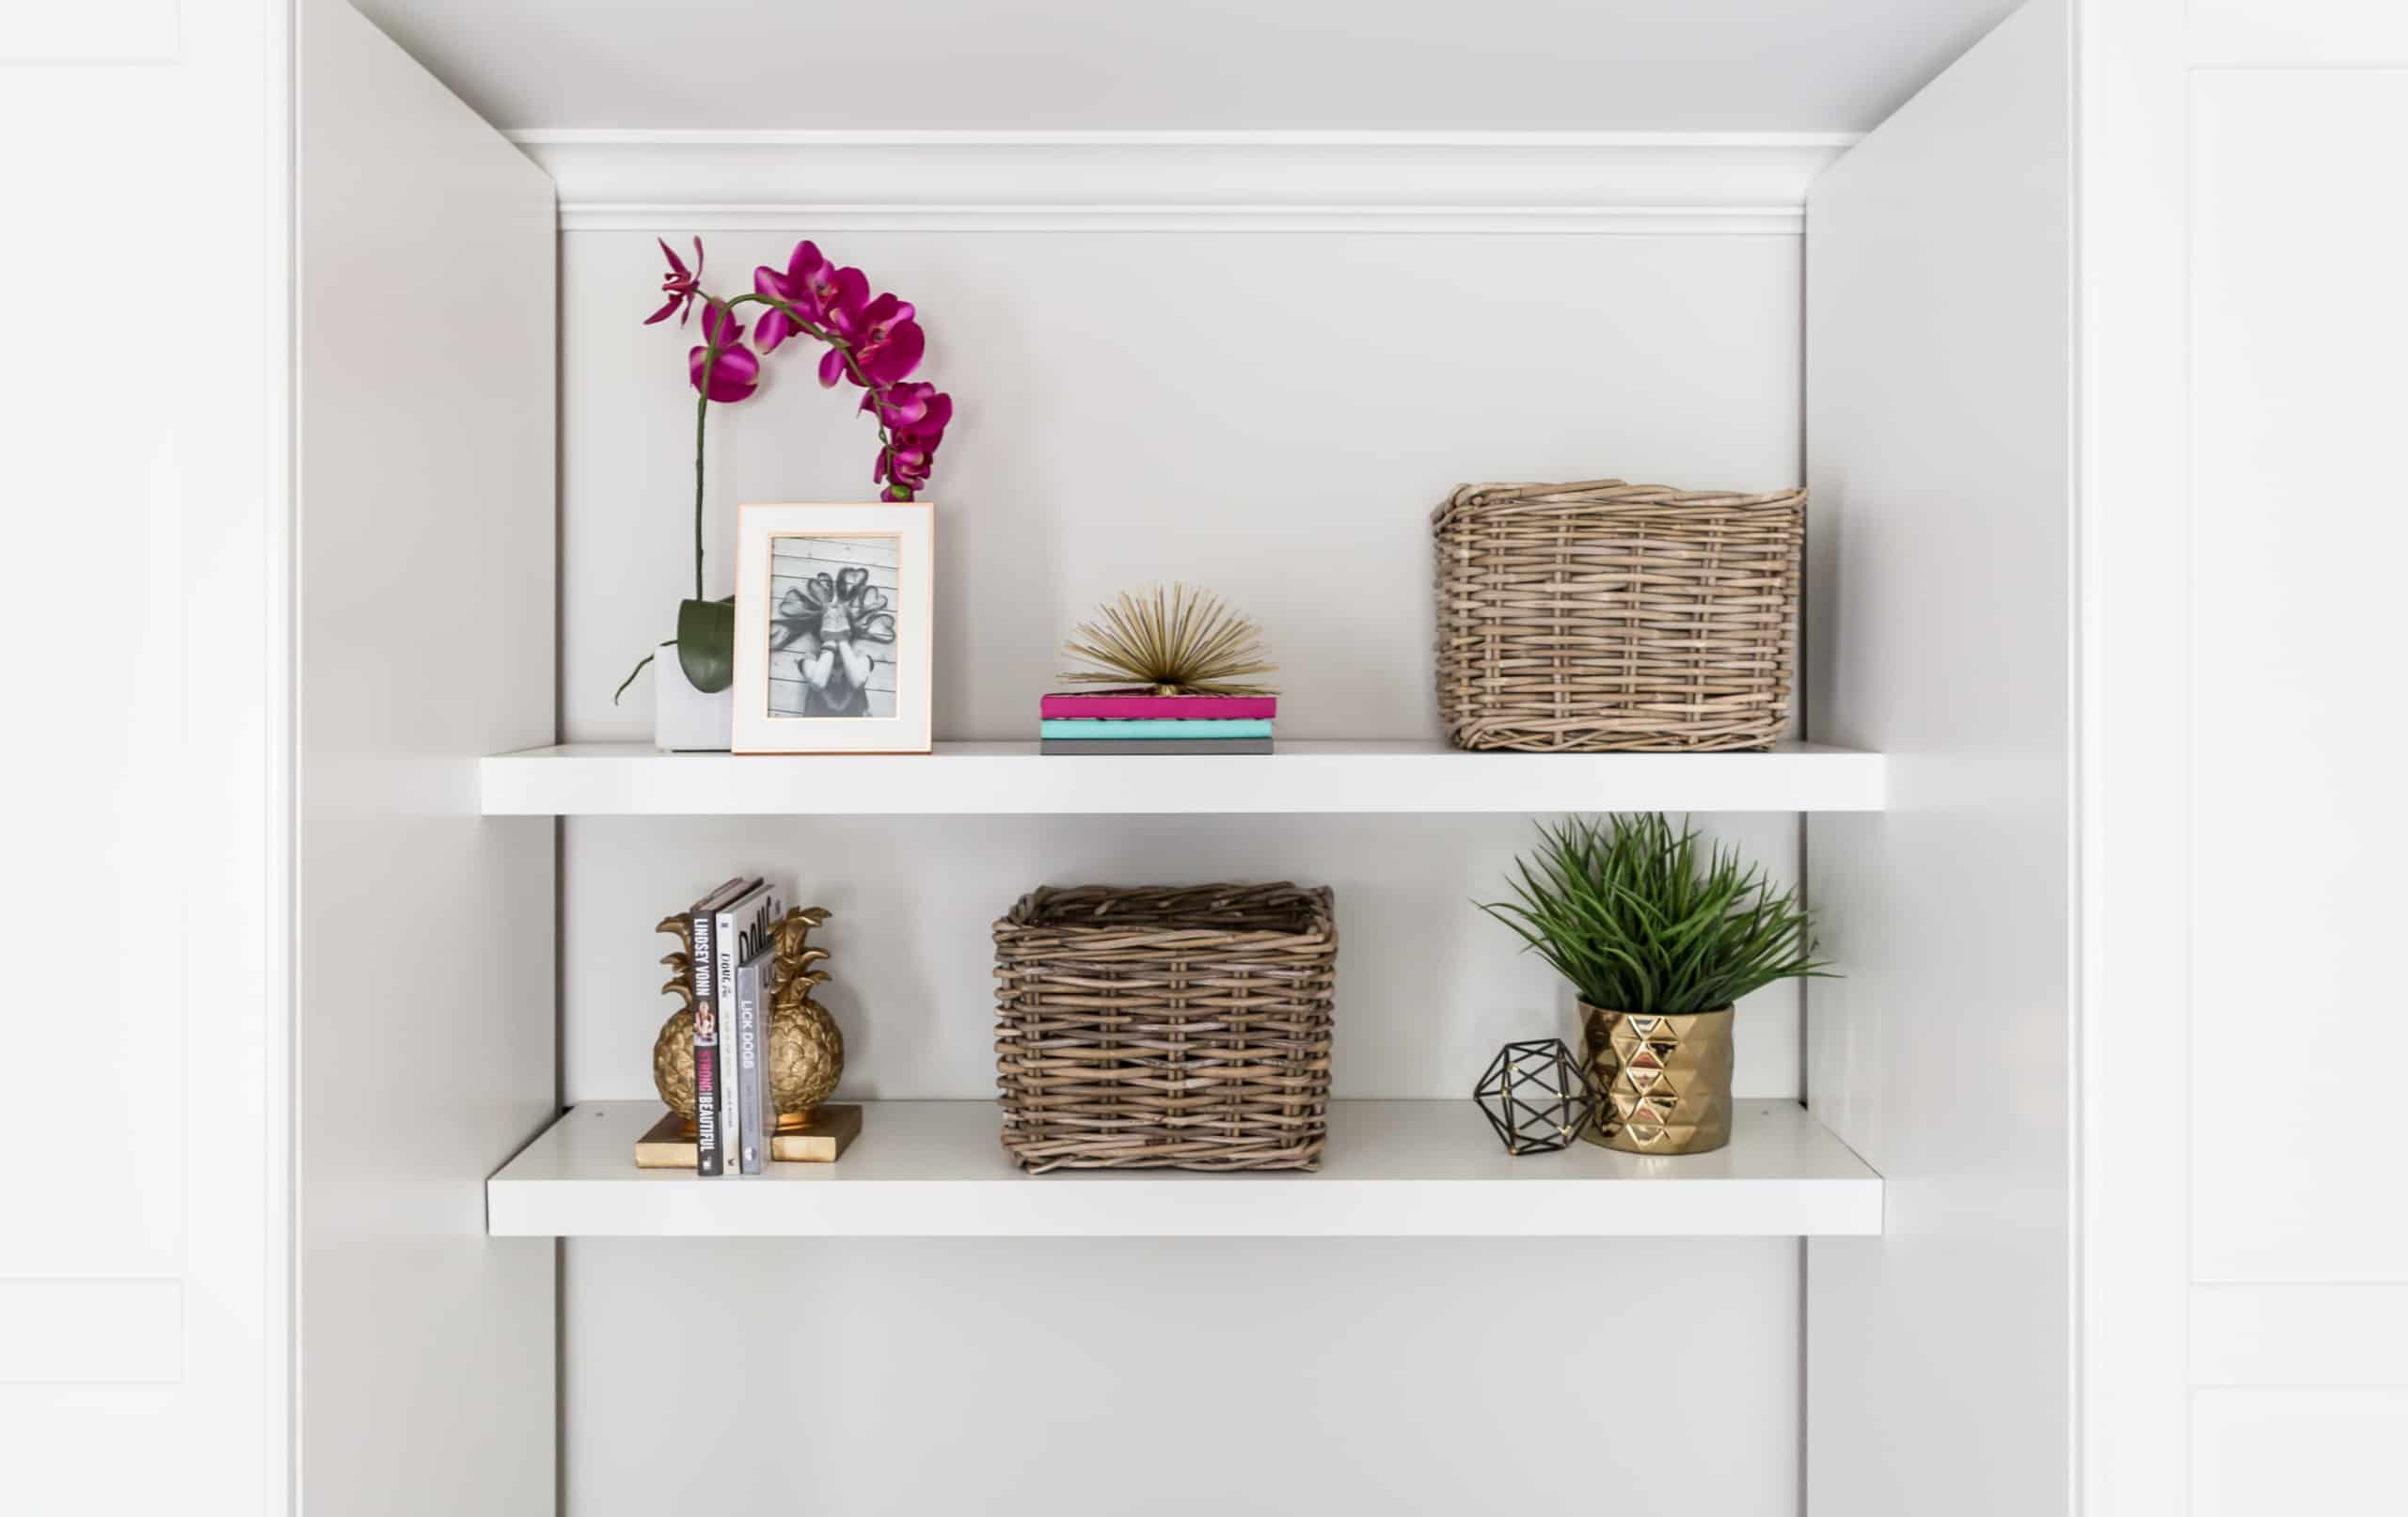 Bookshelf with various decorations on it